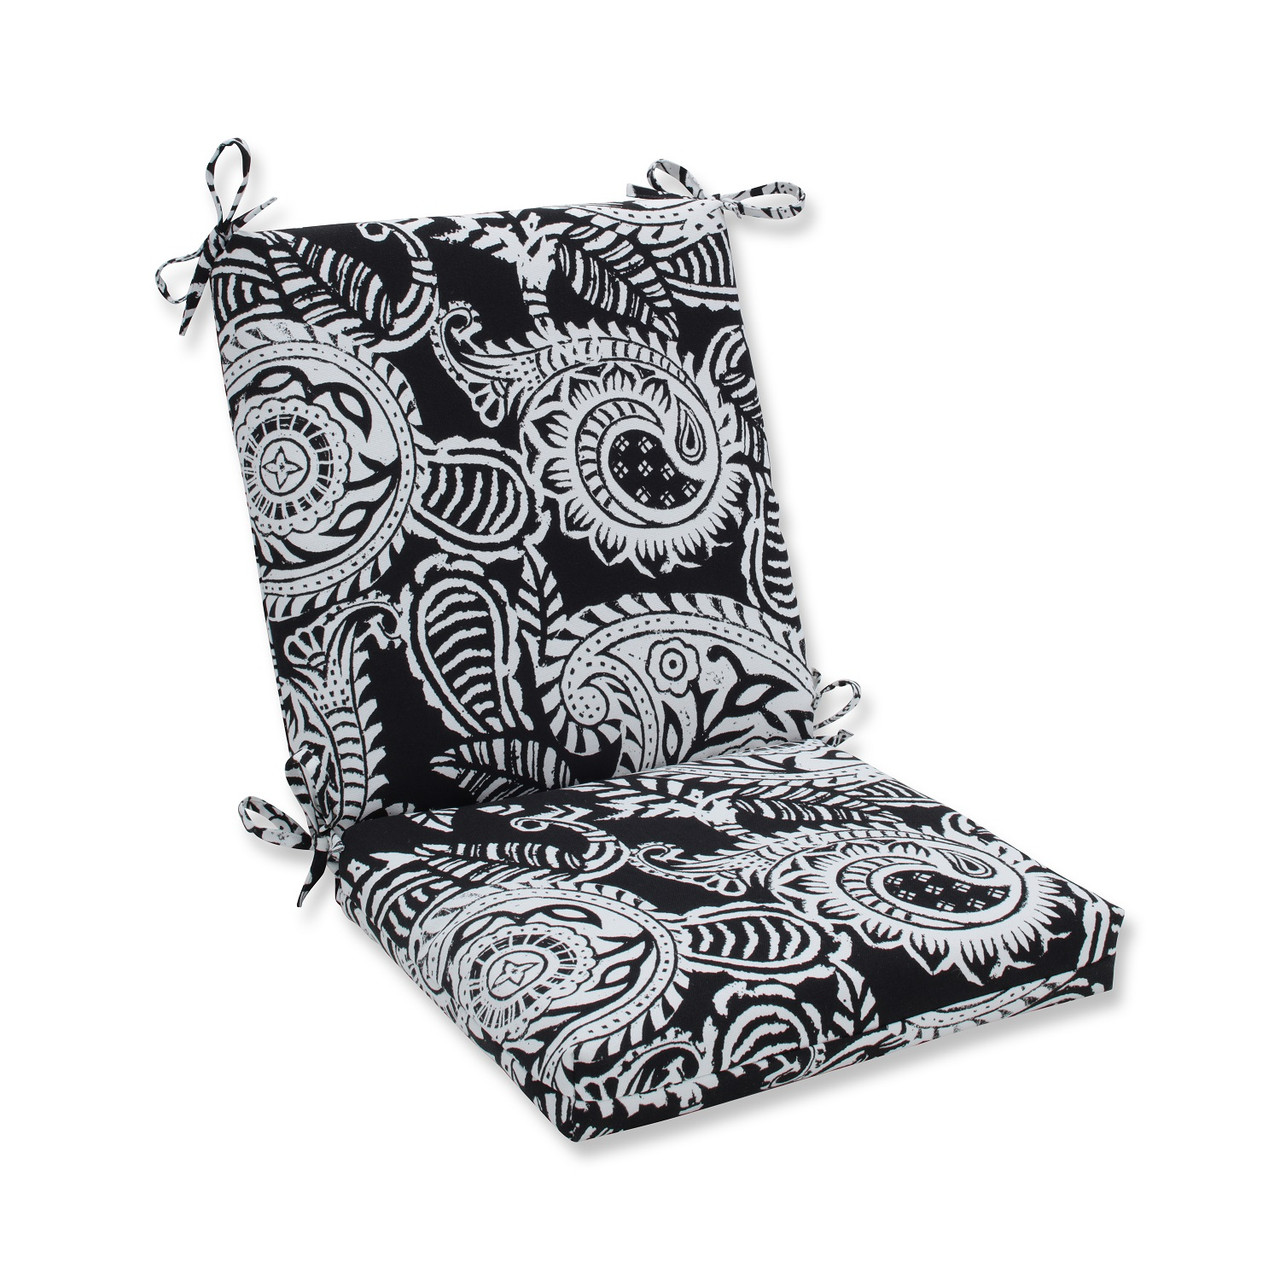 36.5u201d Black And White Paisley Swirl Outdoor Patio Chair Cushion With Ties    32598087